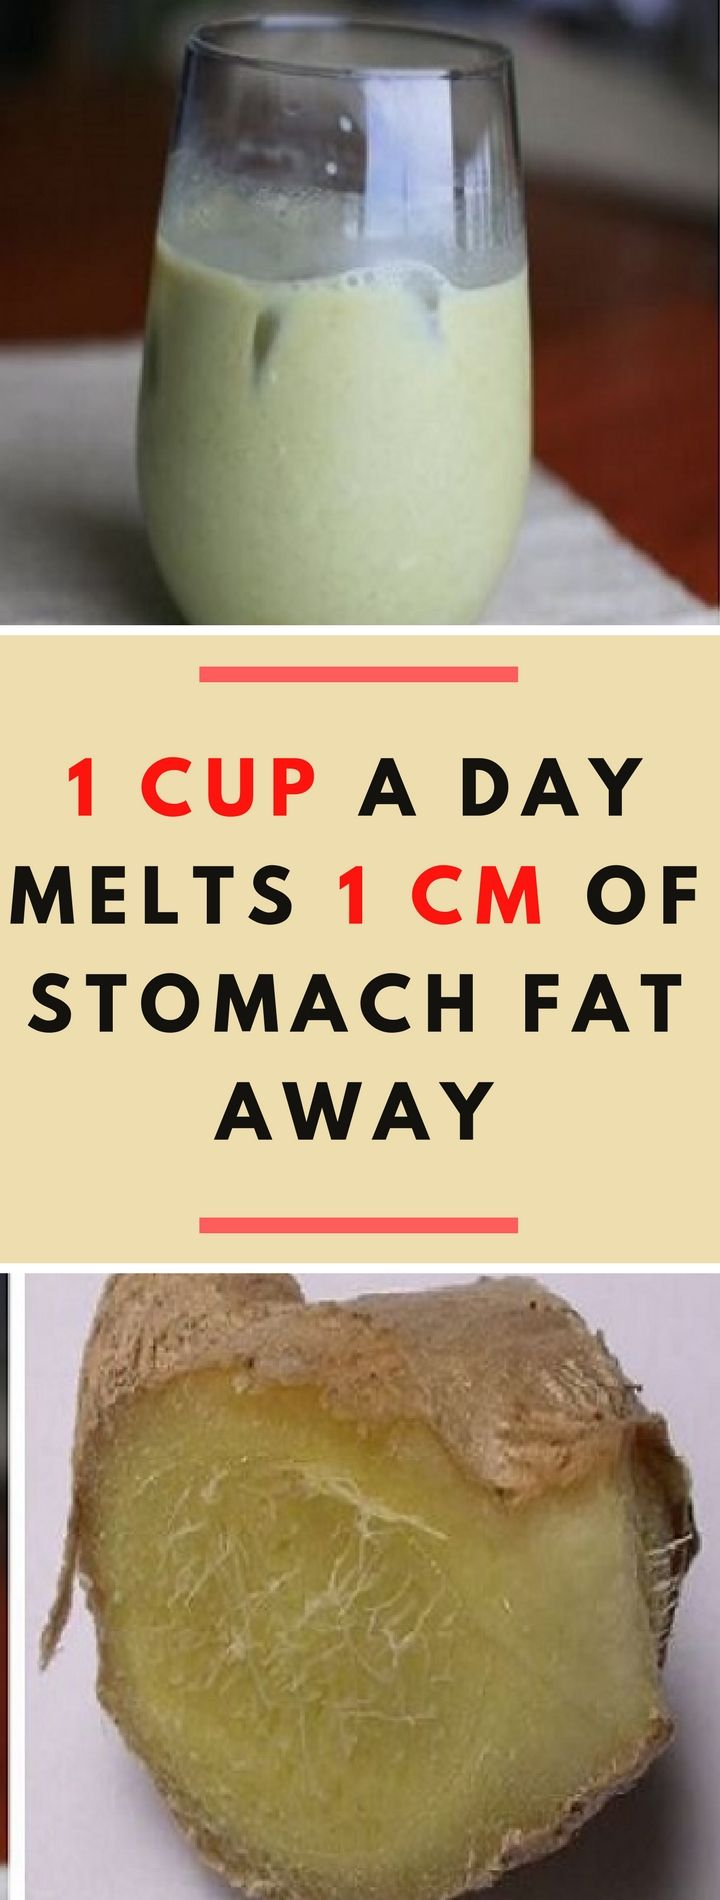 1 Cup a Day Melts 1cm of Stomach Fat Away